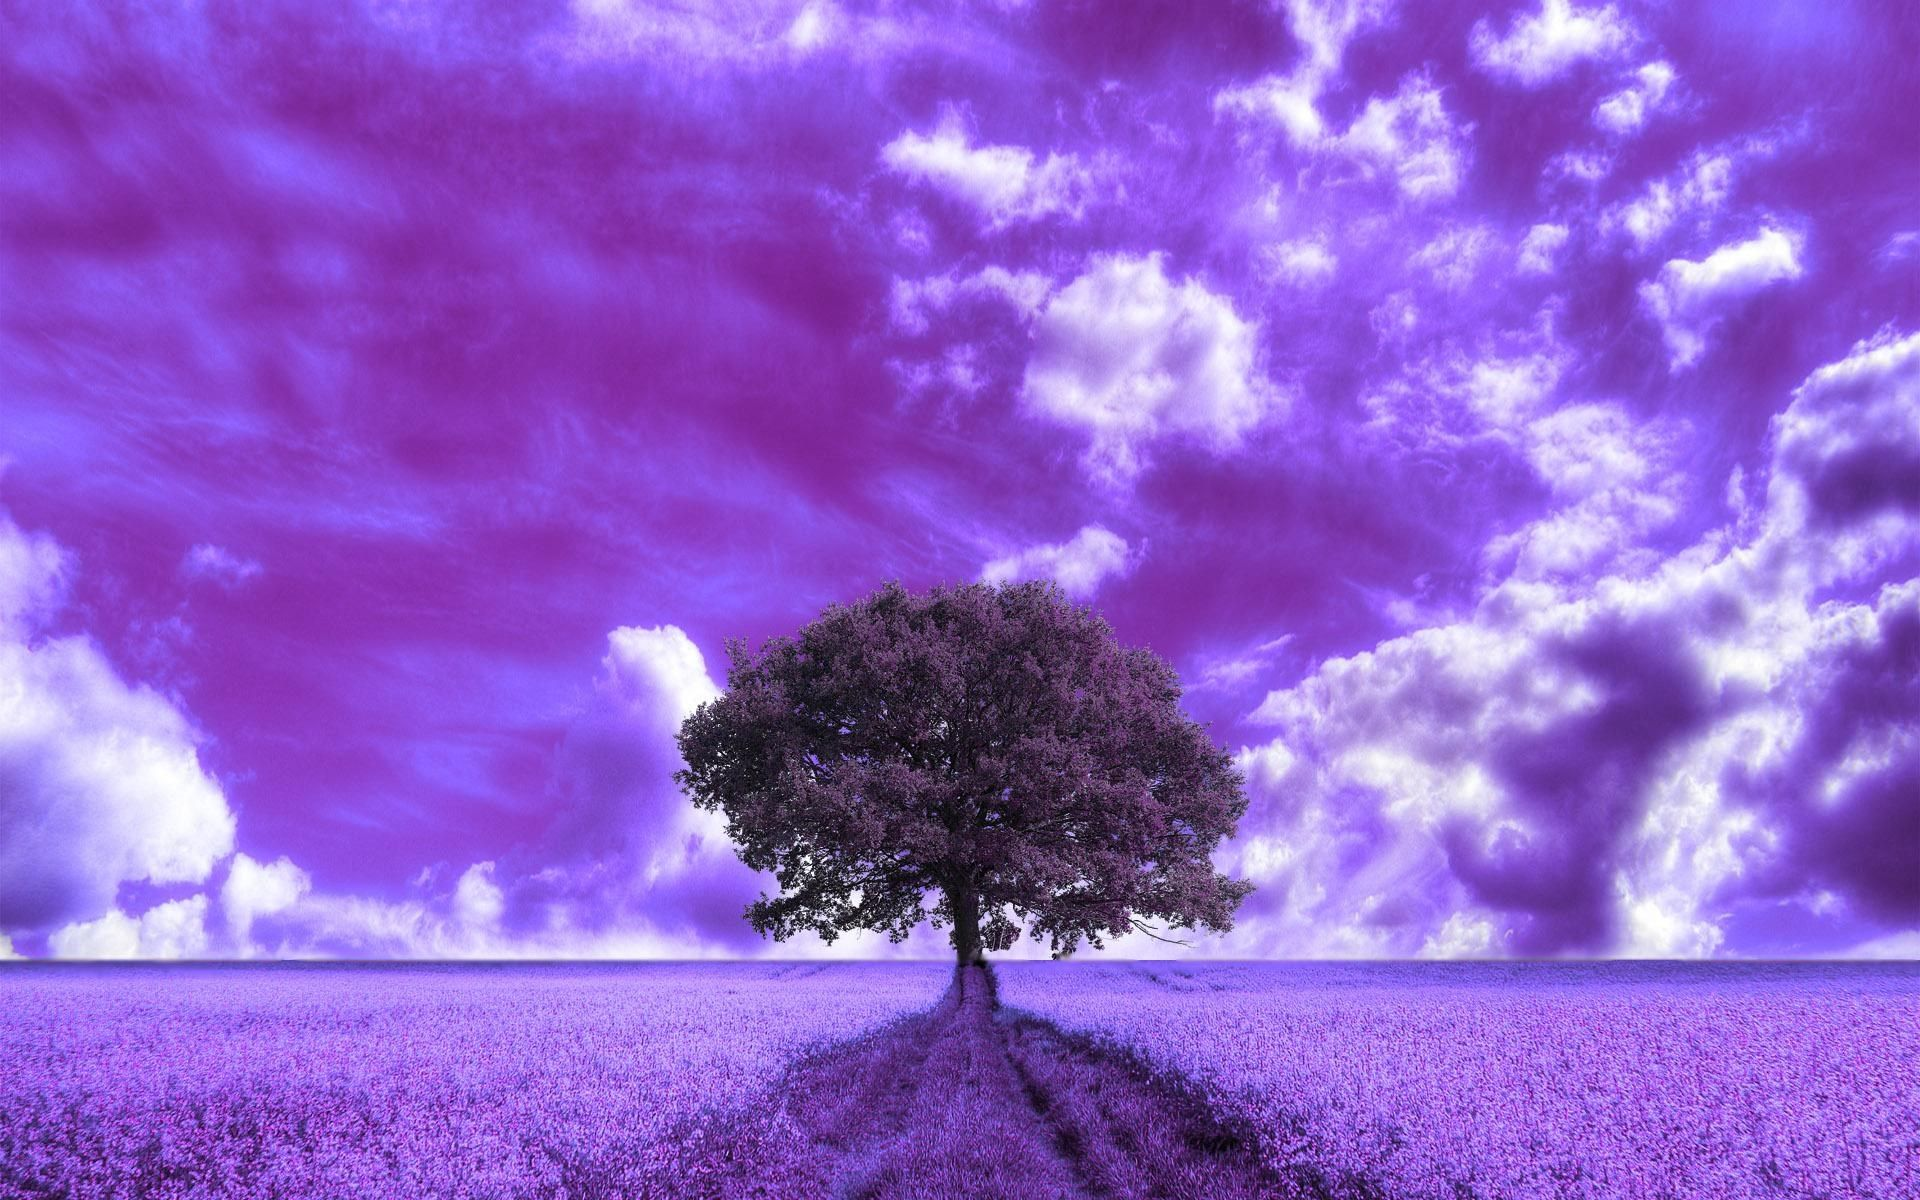 tree image for large desktop - tree category | gogolmogol | pinterest